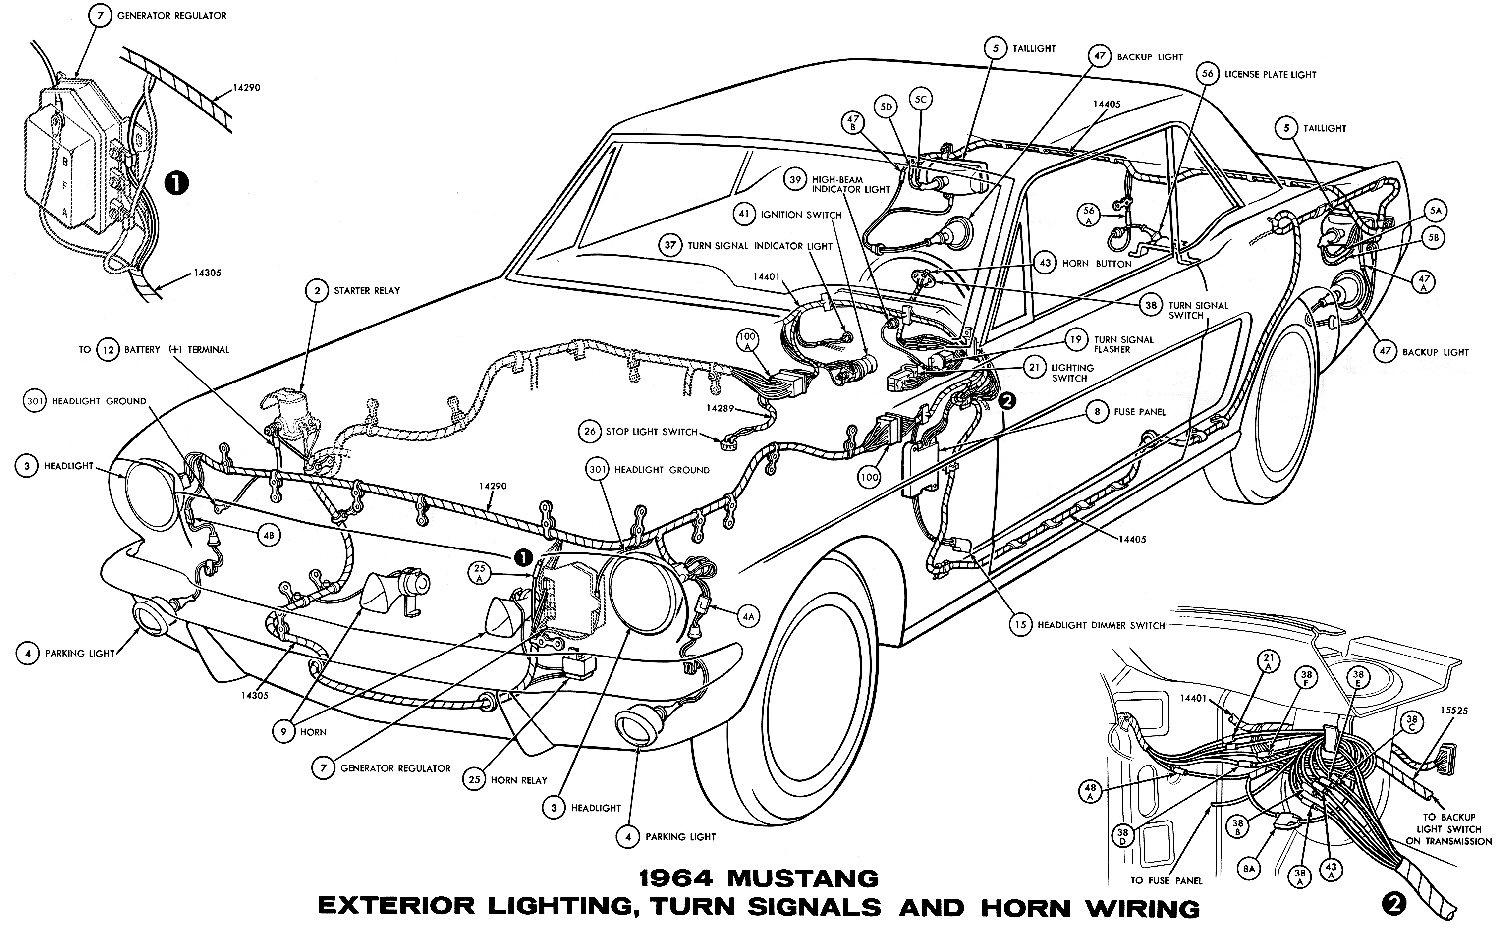 wiring diagram sle ideas cool 1968 mustang 67 mustang horn wiring diagram - wiring diagram and schematic #1